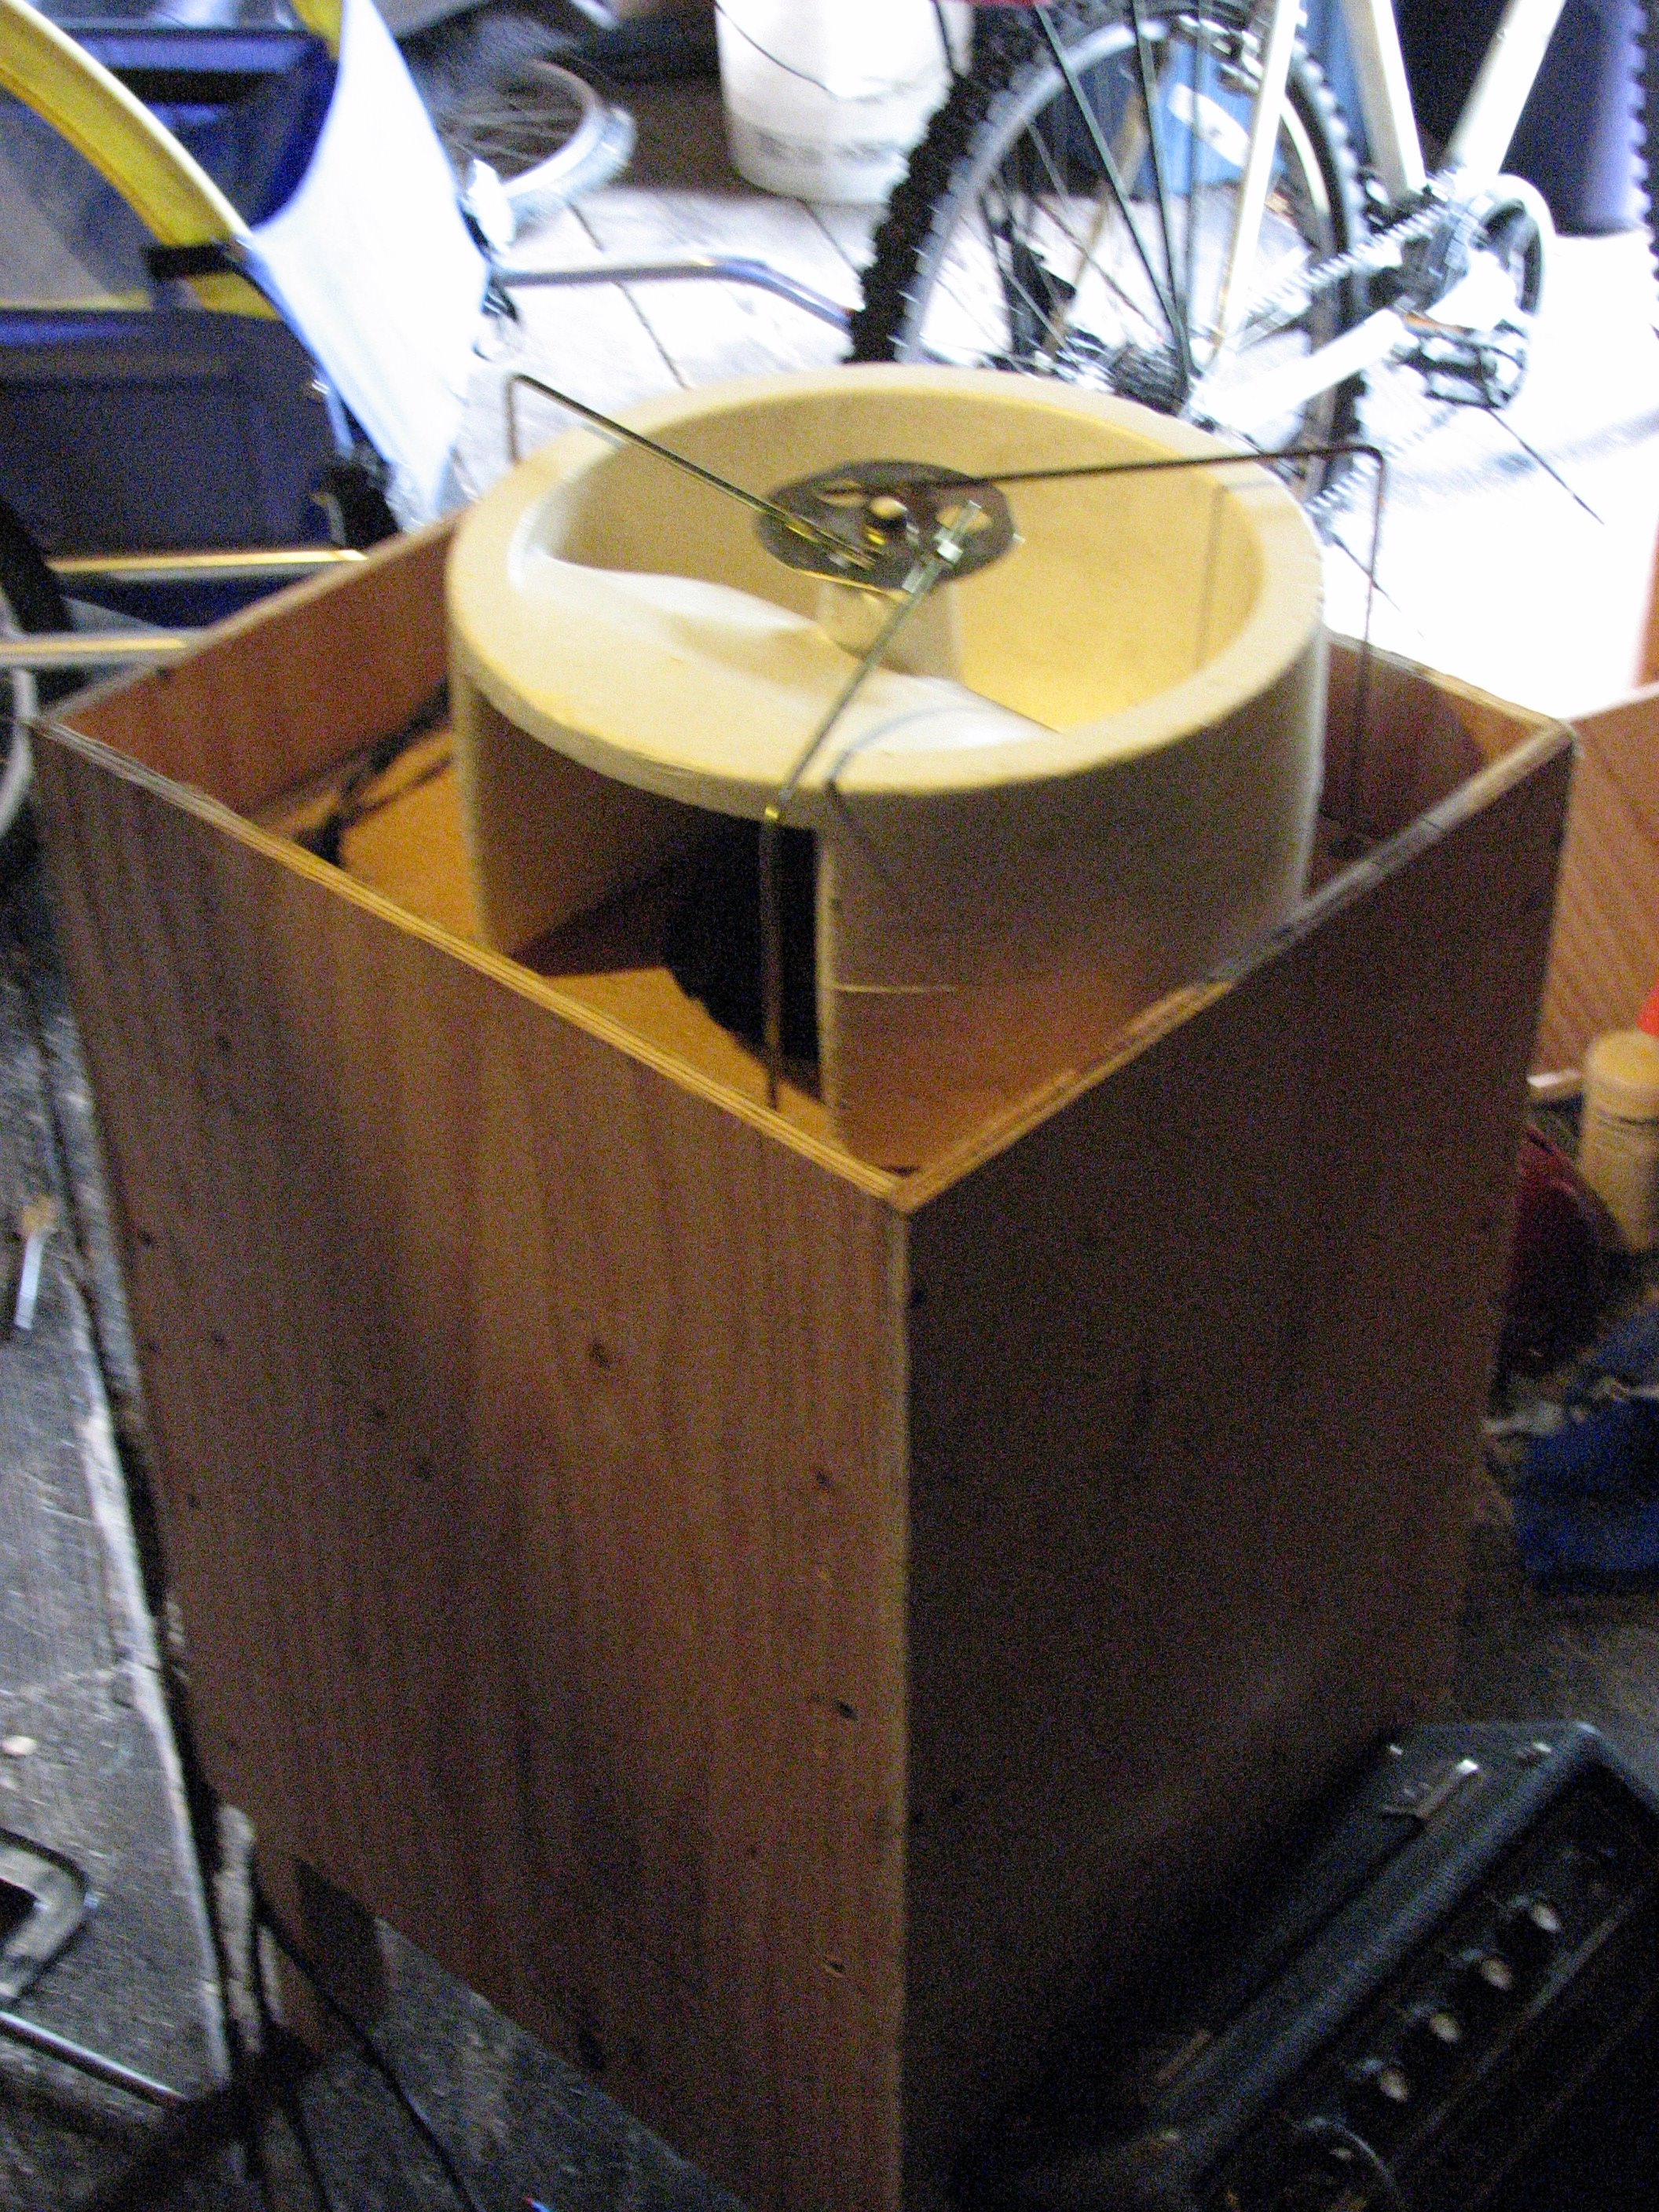 File:Rotary Speaker Cabinet (by Ralph Hogaboom) - rotor unit made ...